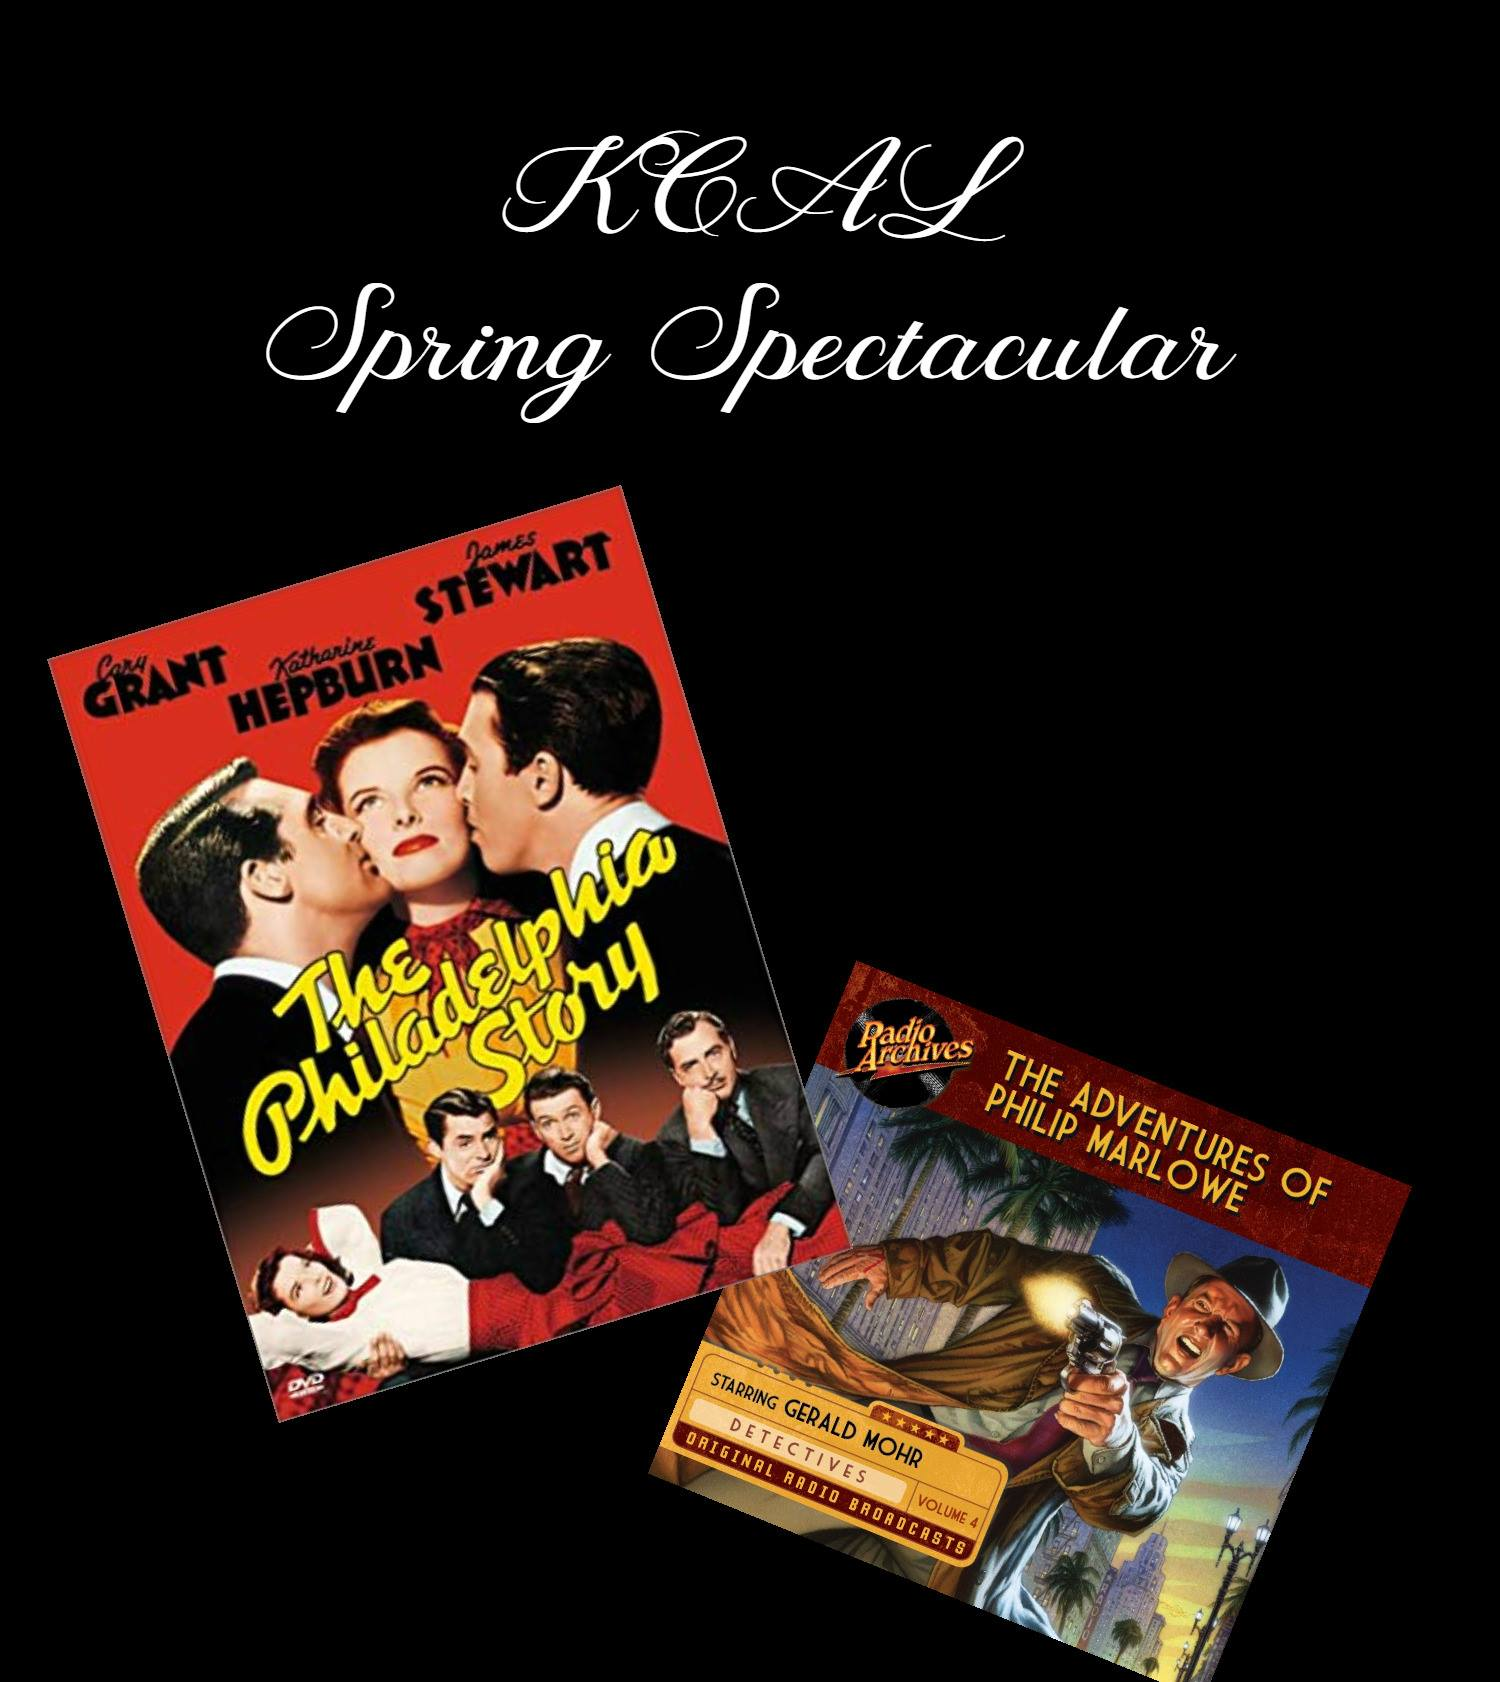 """""""Phillip Marlowe, Private Eye"""" & """"The Philadelphia Story"""" from the KCAL Spring Spectacular March, 2019"""